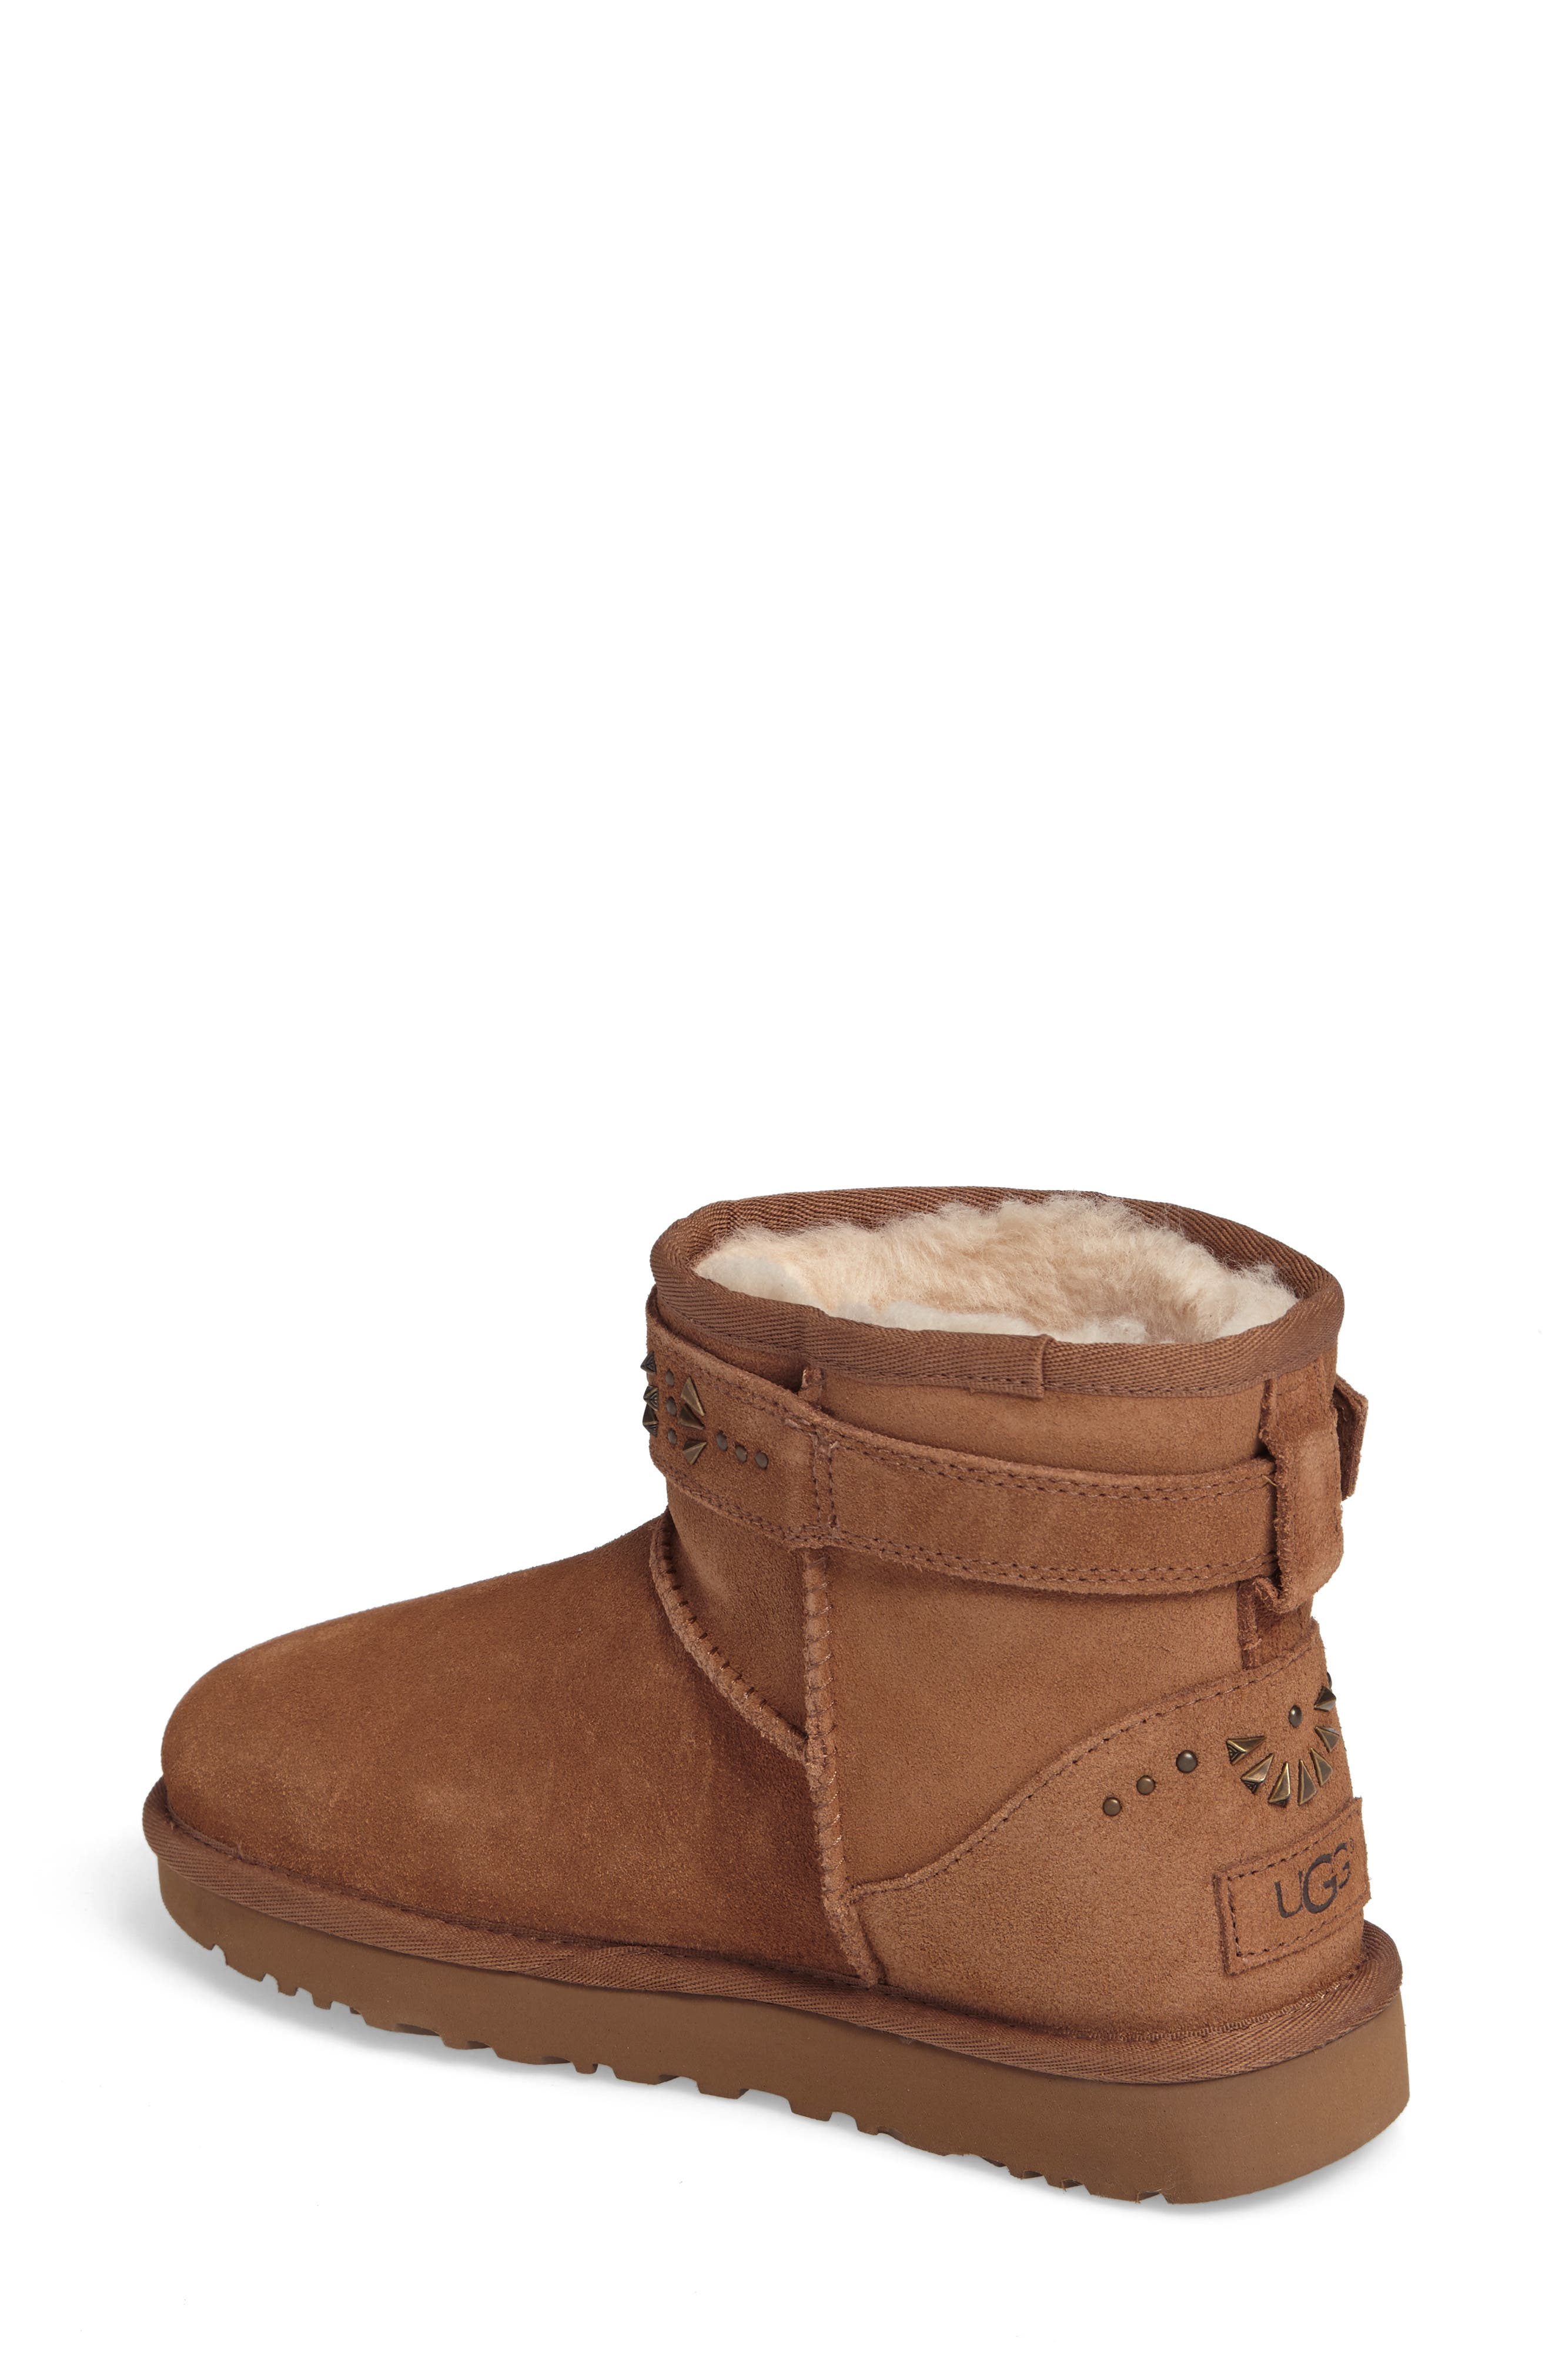 Jadine Boot,                             Alternate thumbnail 2, color,                             Chestnut Suede